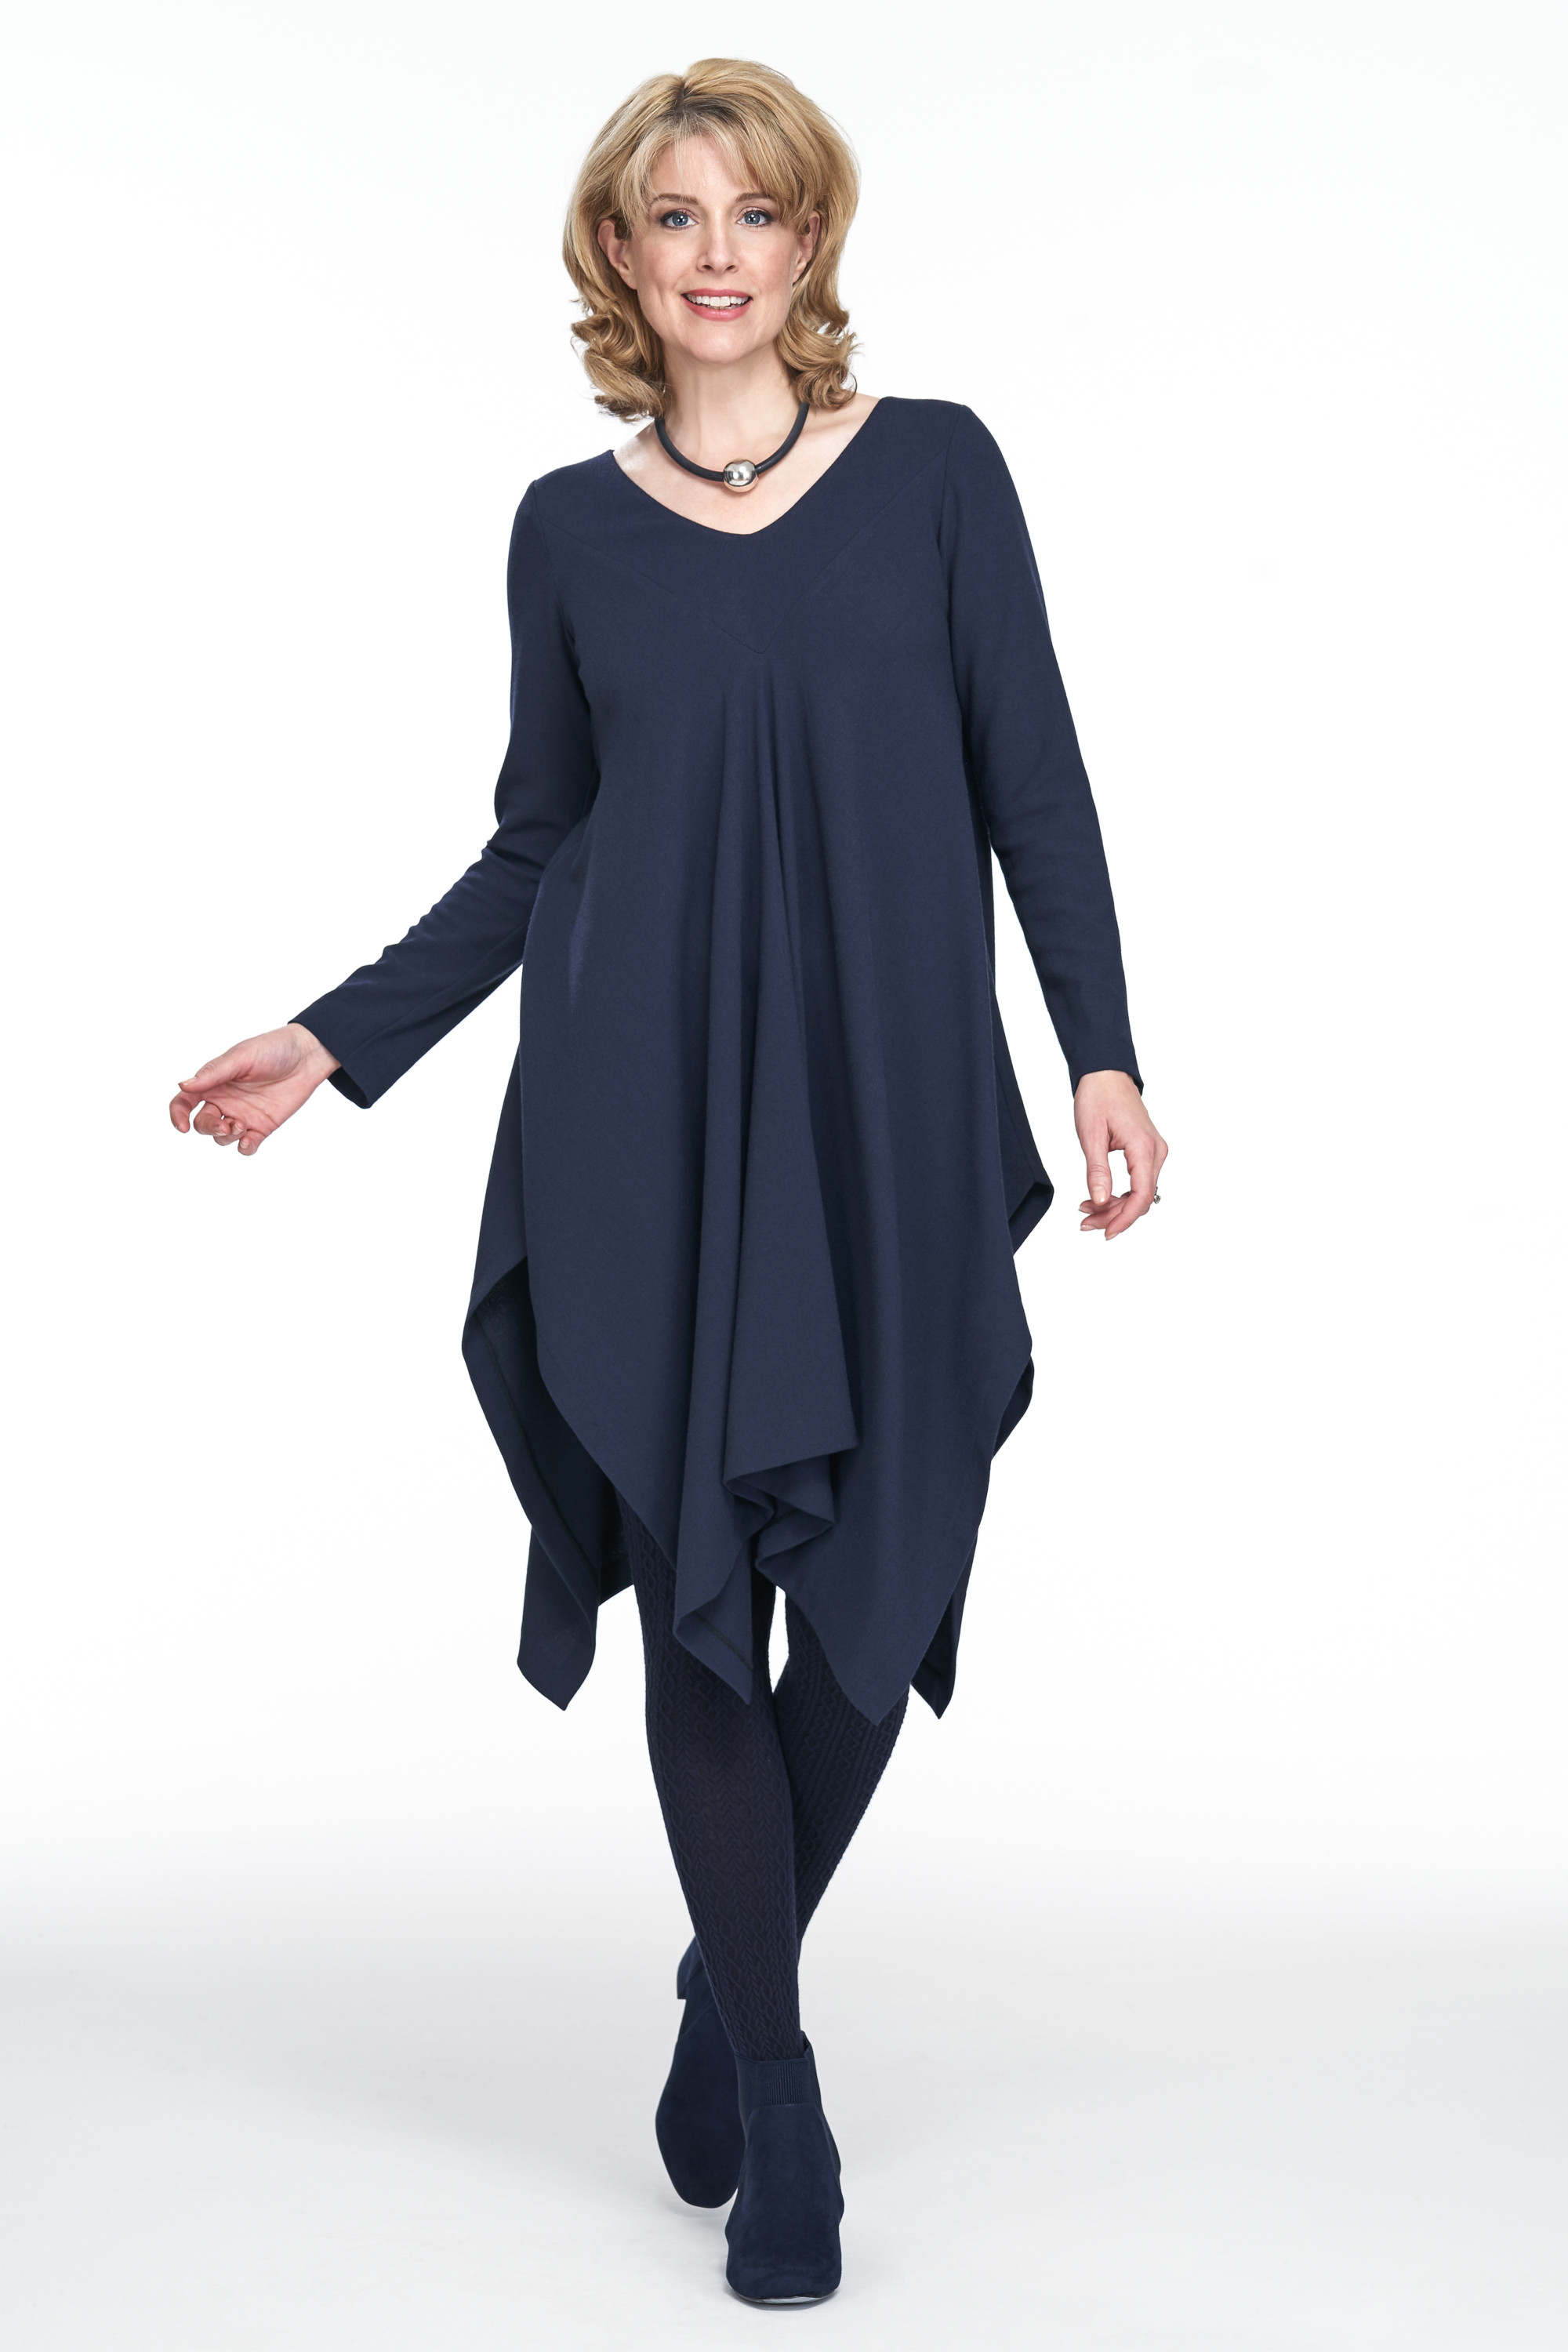 crepe overhead tunic perfect for autumn